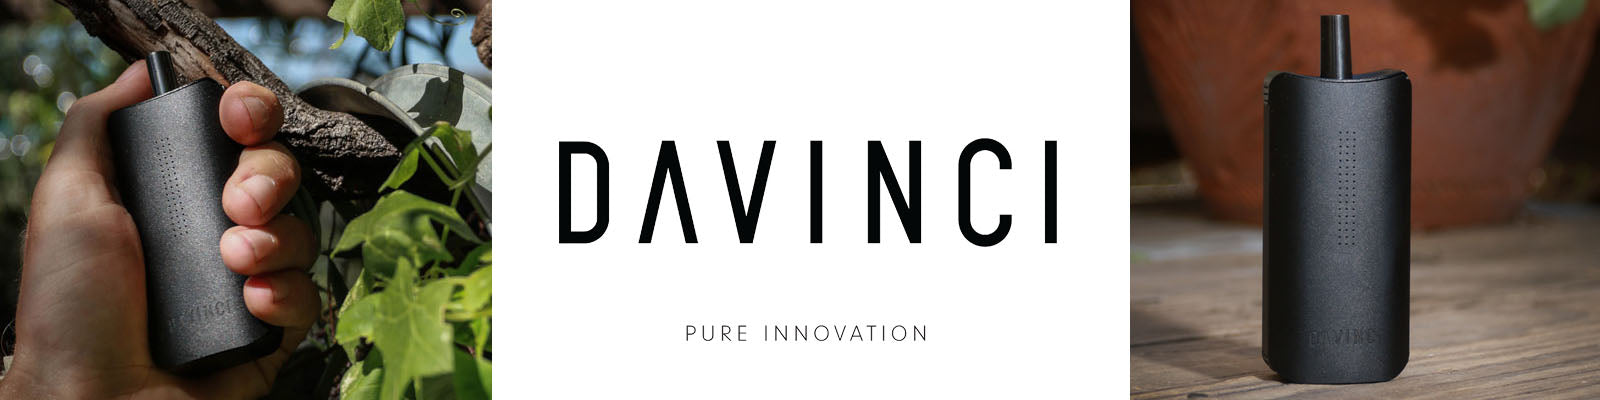 DaVinci IQ Vaporizers Canada Free Shipping Authorized Sellers